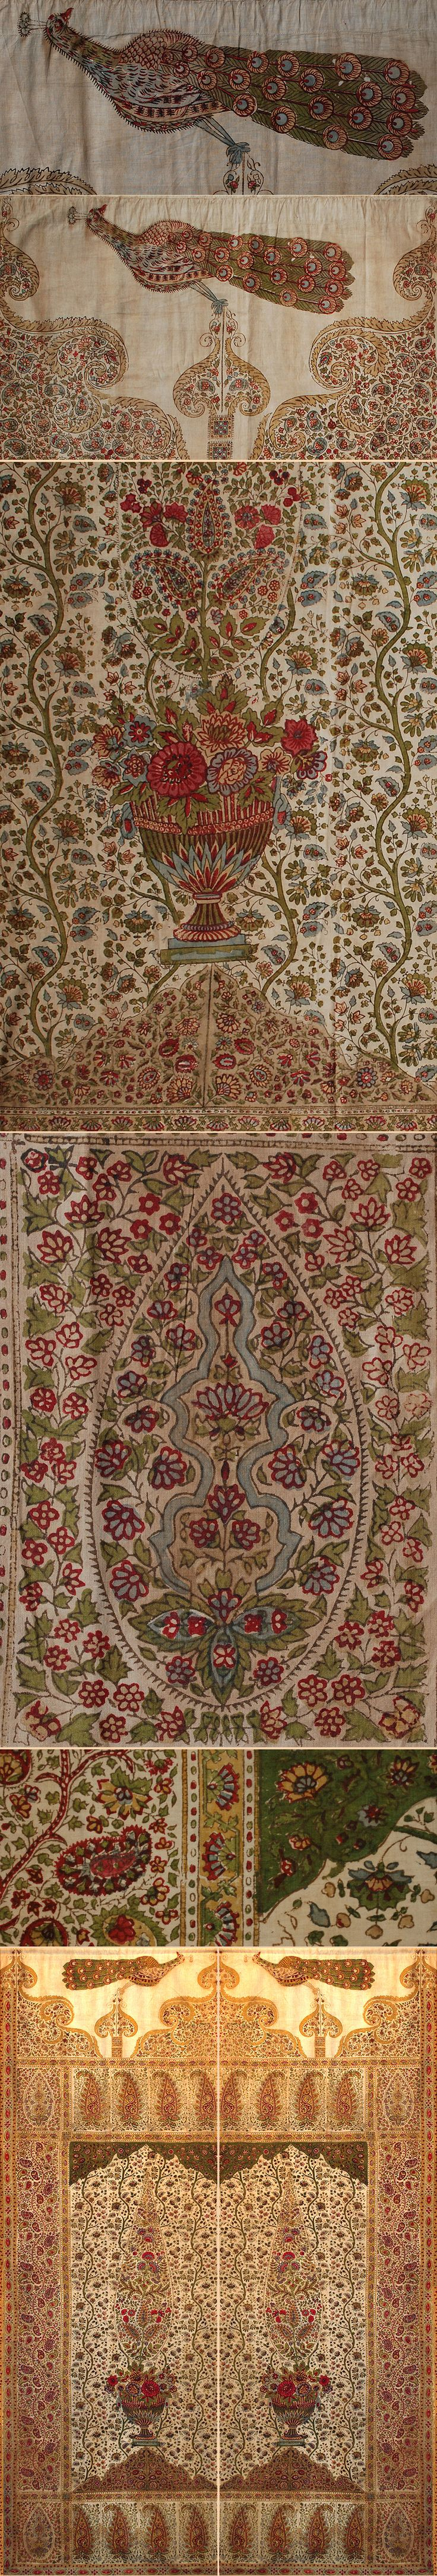 Antique Indian Block Print on Cotton two Panel Door Cover   Mughal Dynasty  1526 - 1857 A.D